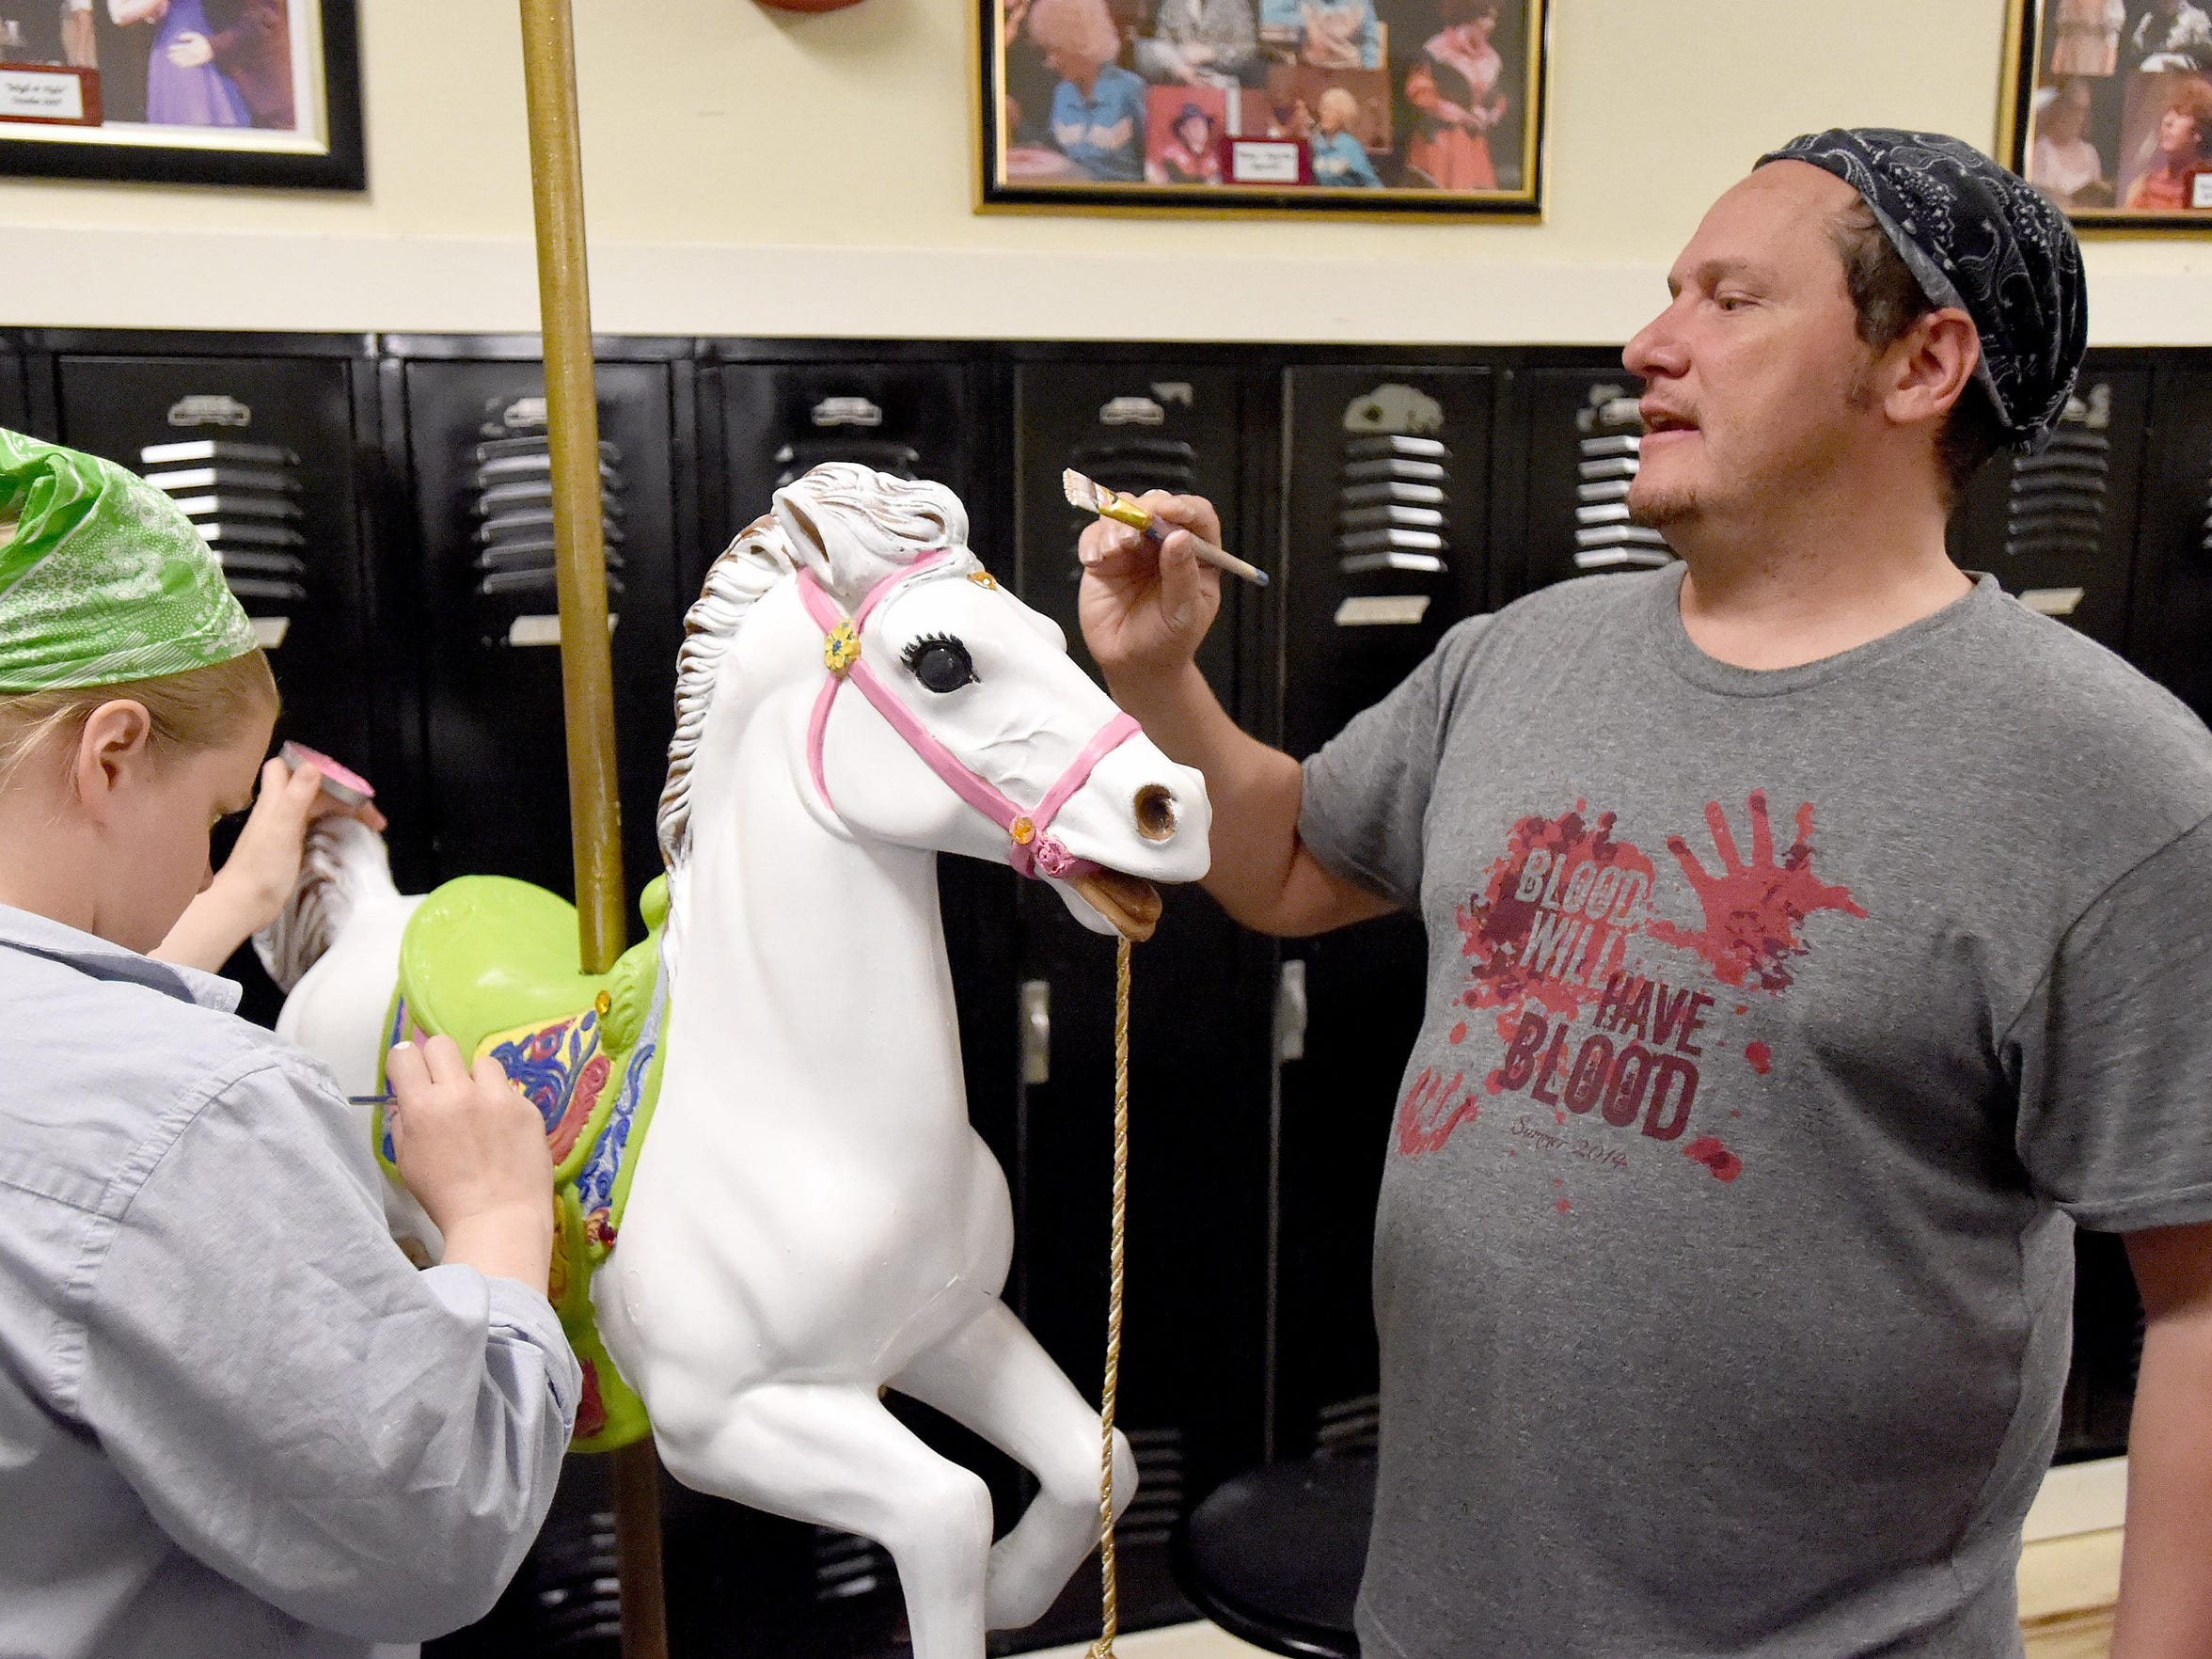 Director Hank Fitzgerald picks up a brush during a work session and decides to add eye lashes to the carousel horse that will be used by the character Mary Poppins in their production.